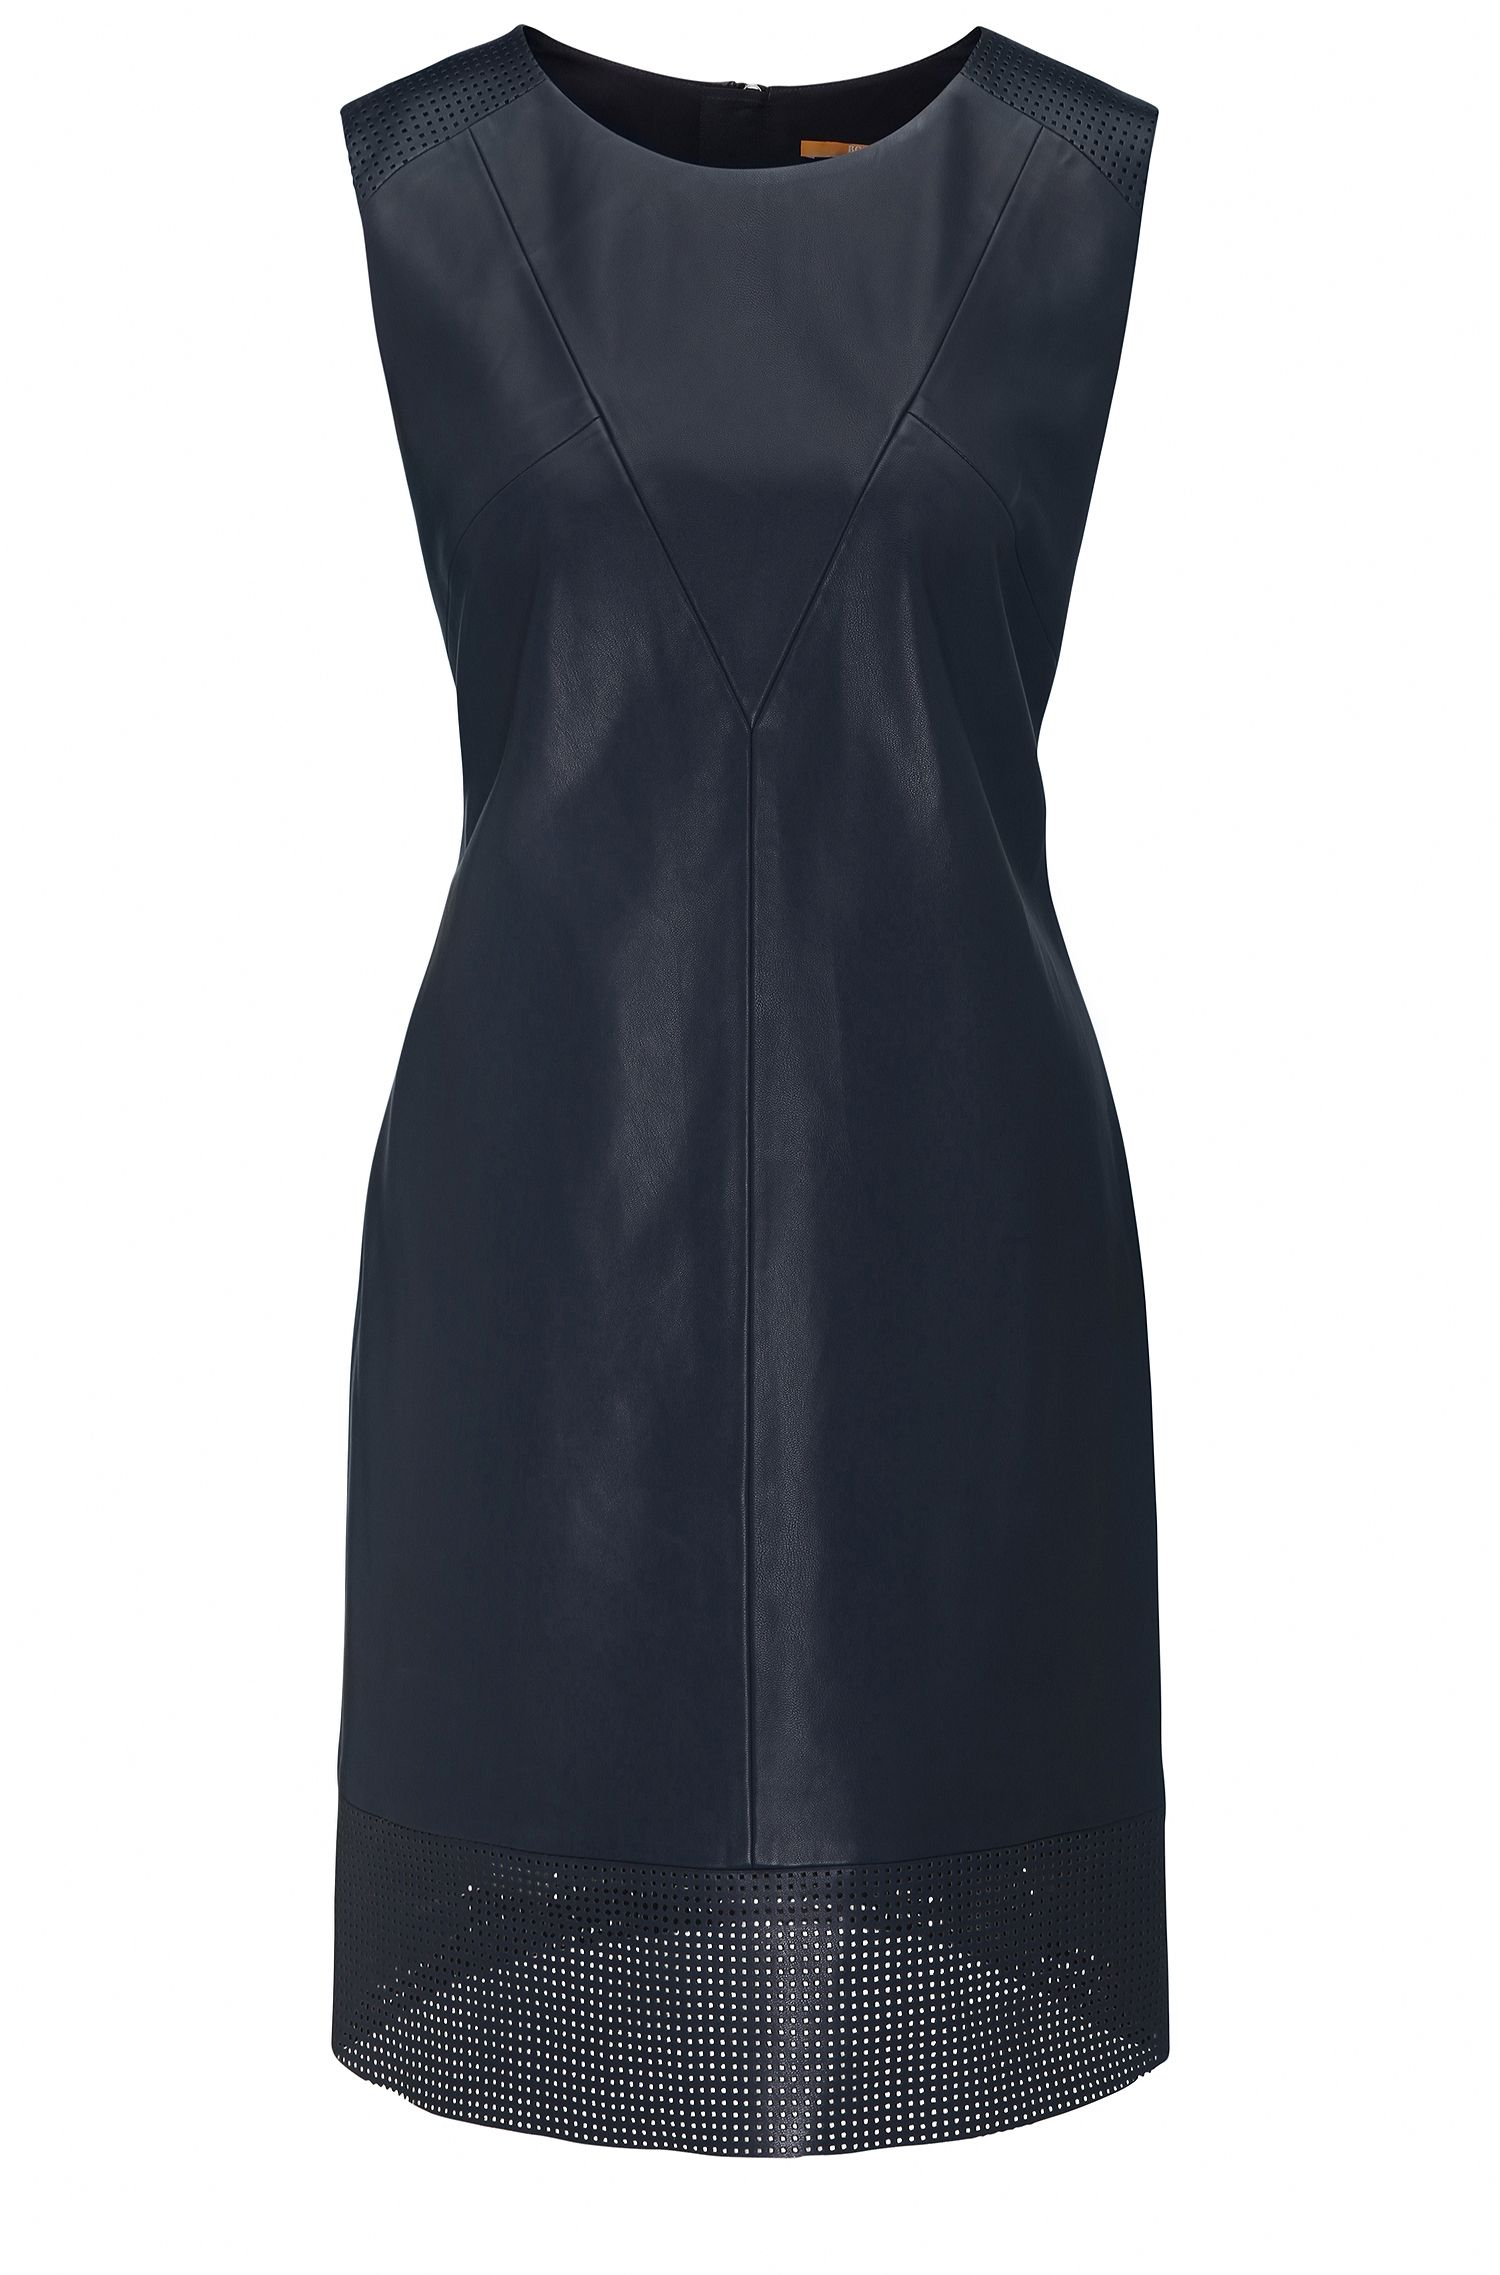 A-line dress in faux leather